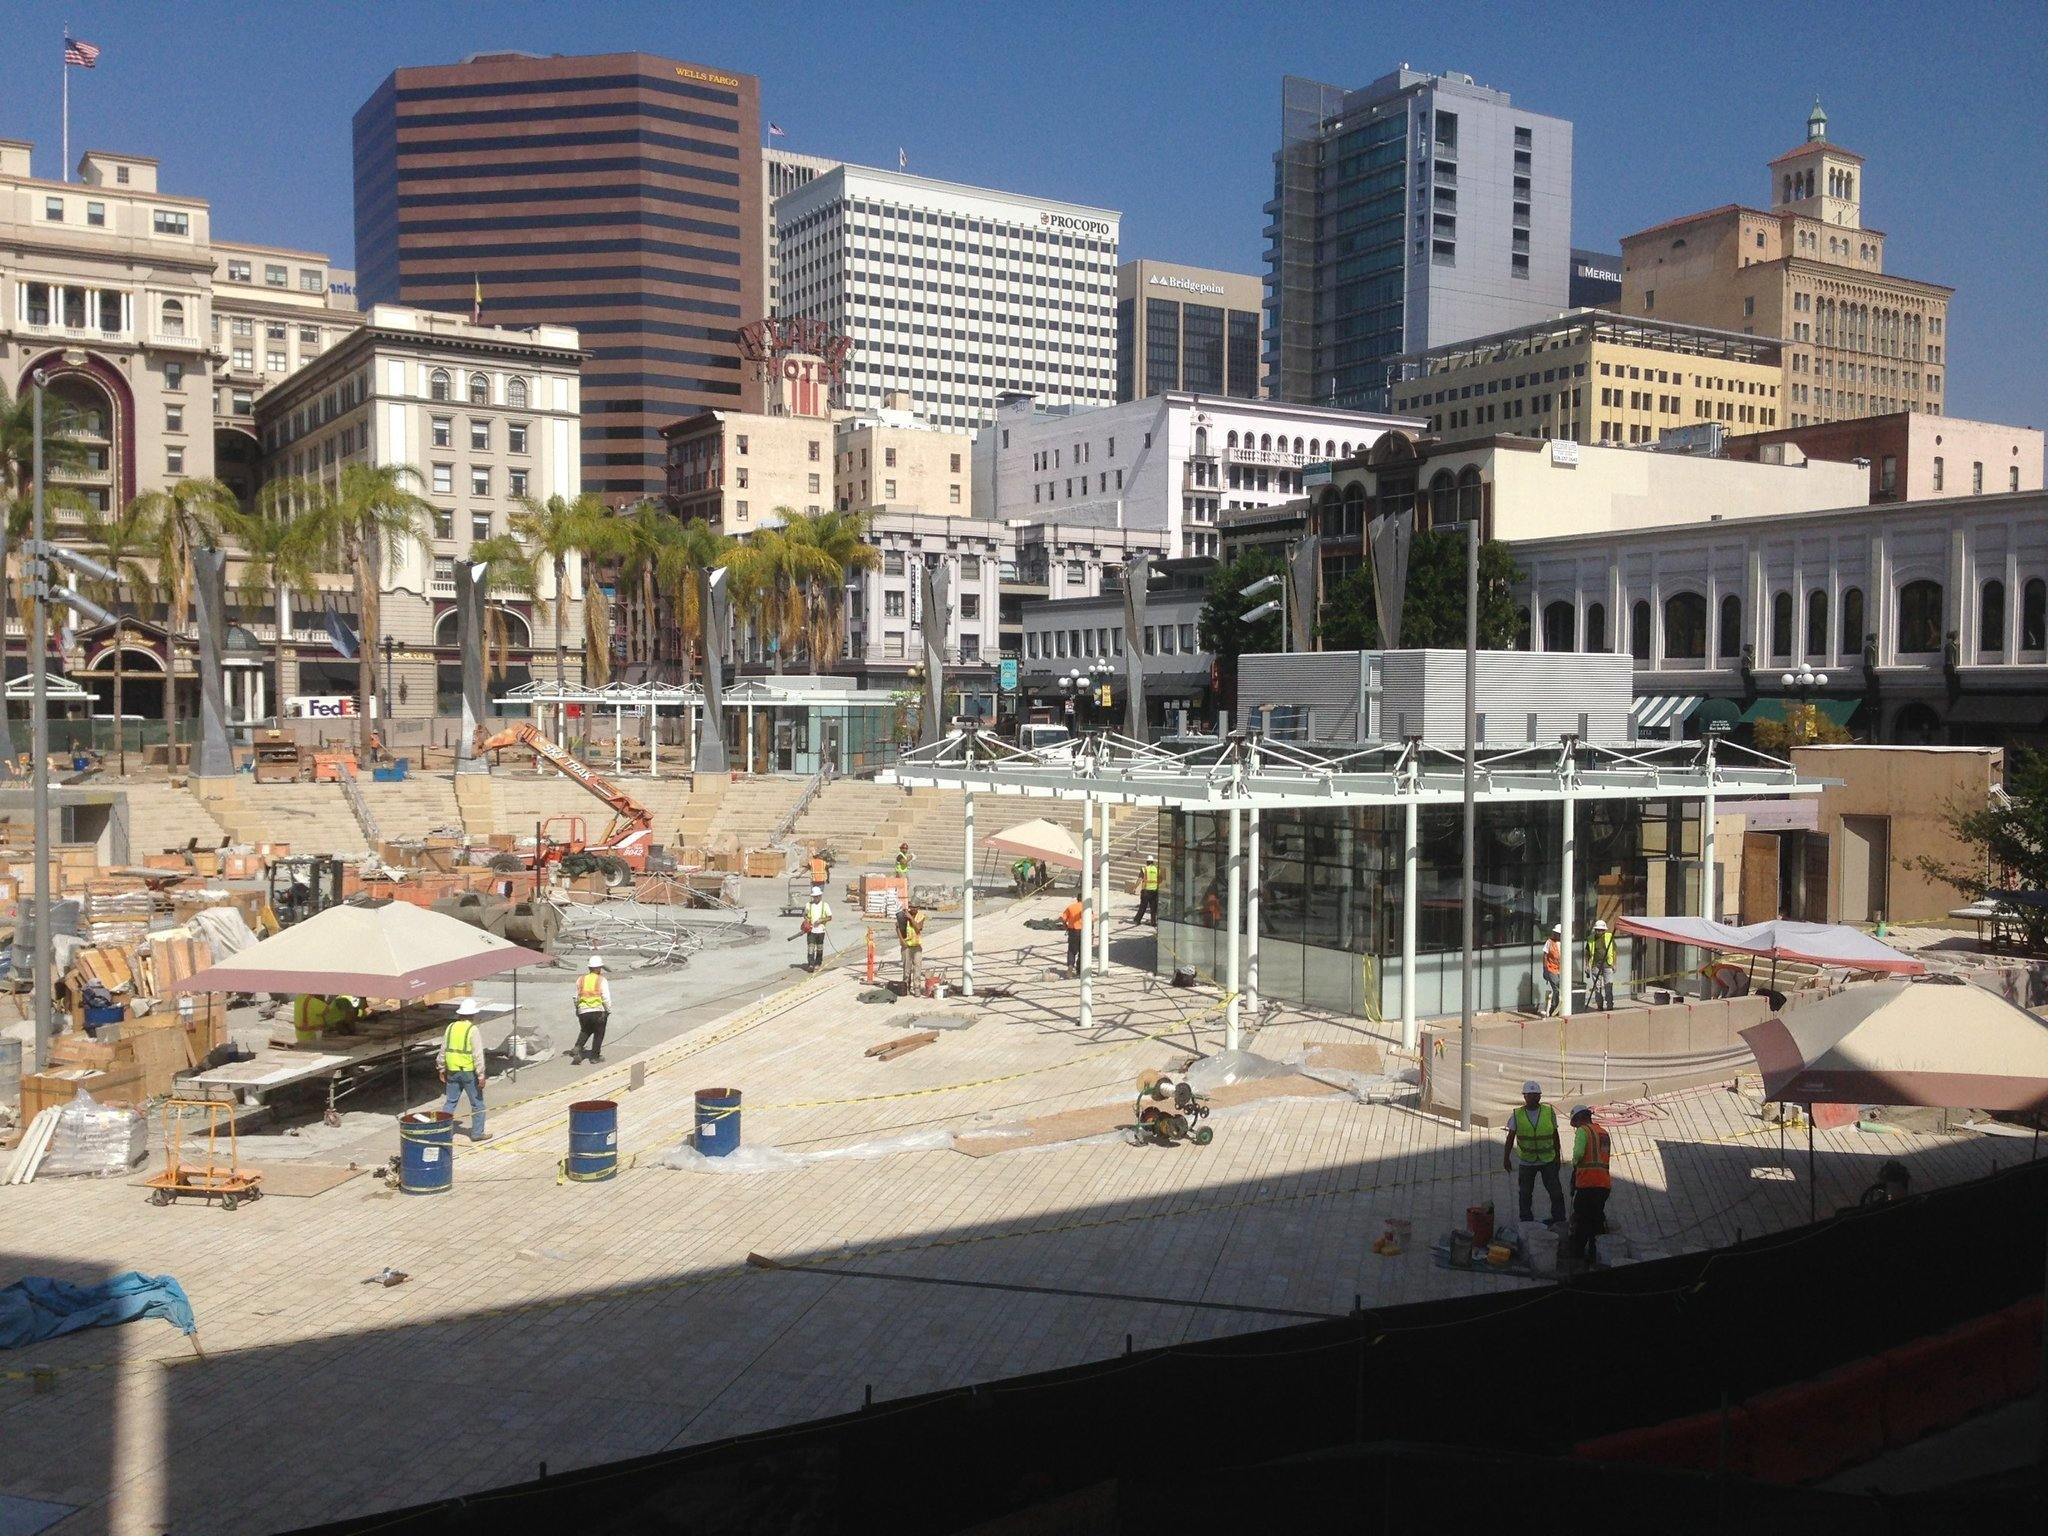 Westfield Horton Plaza, not to be confused with its adjacent namesake Horton Plaza, is a five-level outdoor shopping mall located in downtown San Diego known for its bright colors, architectural tricks, and odd spatial rhythms. It stands on city blocks adjacent to the city's historic Gaslamp londonmetalumni.ml: Westfield Corporation.